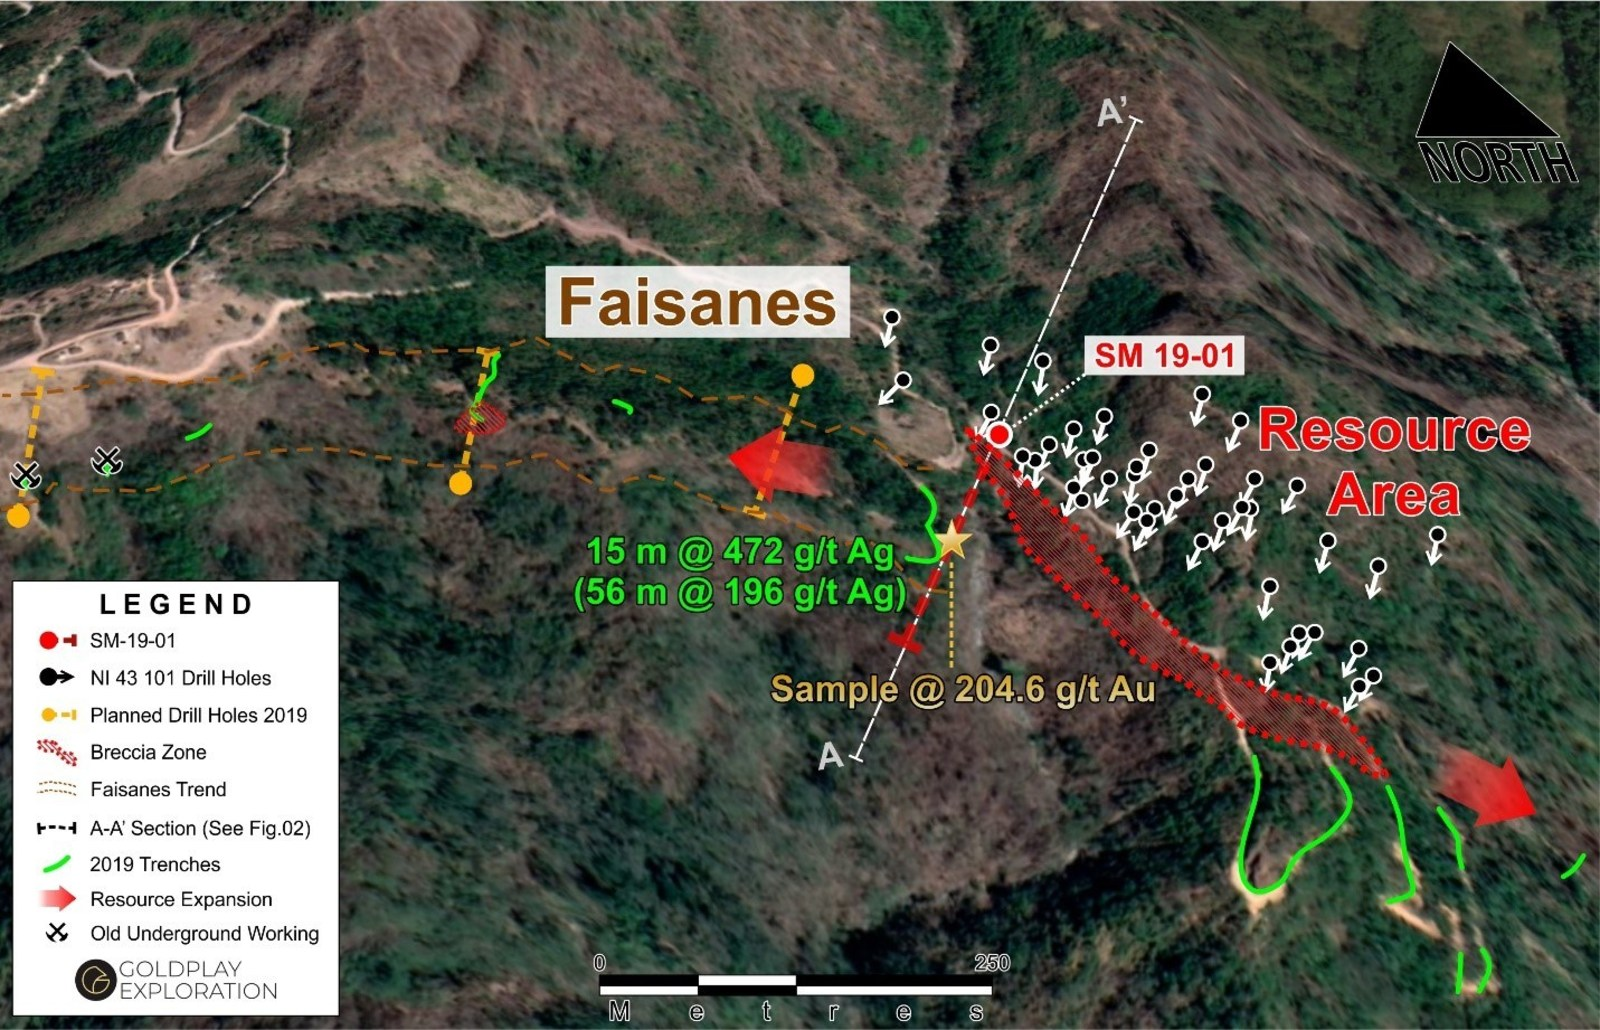 Figure 1: Drill Hole SM 19-01 Location at the Faisanes Target